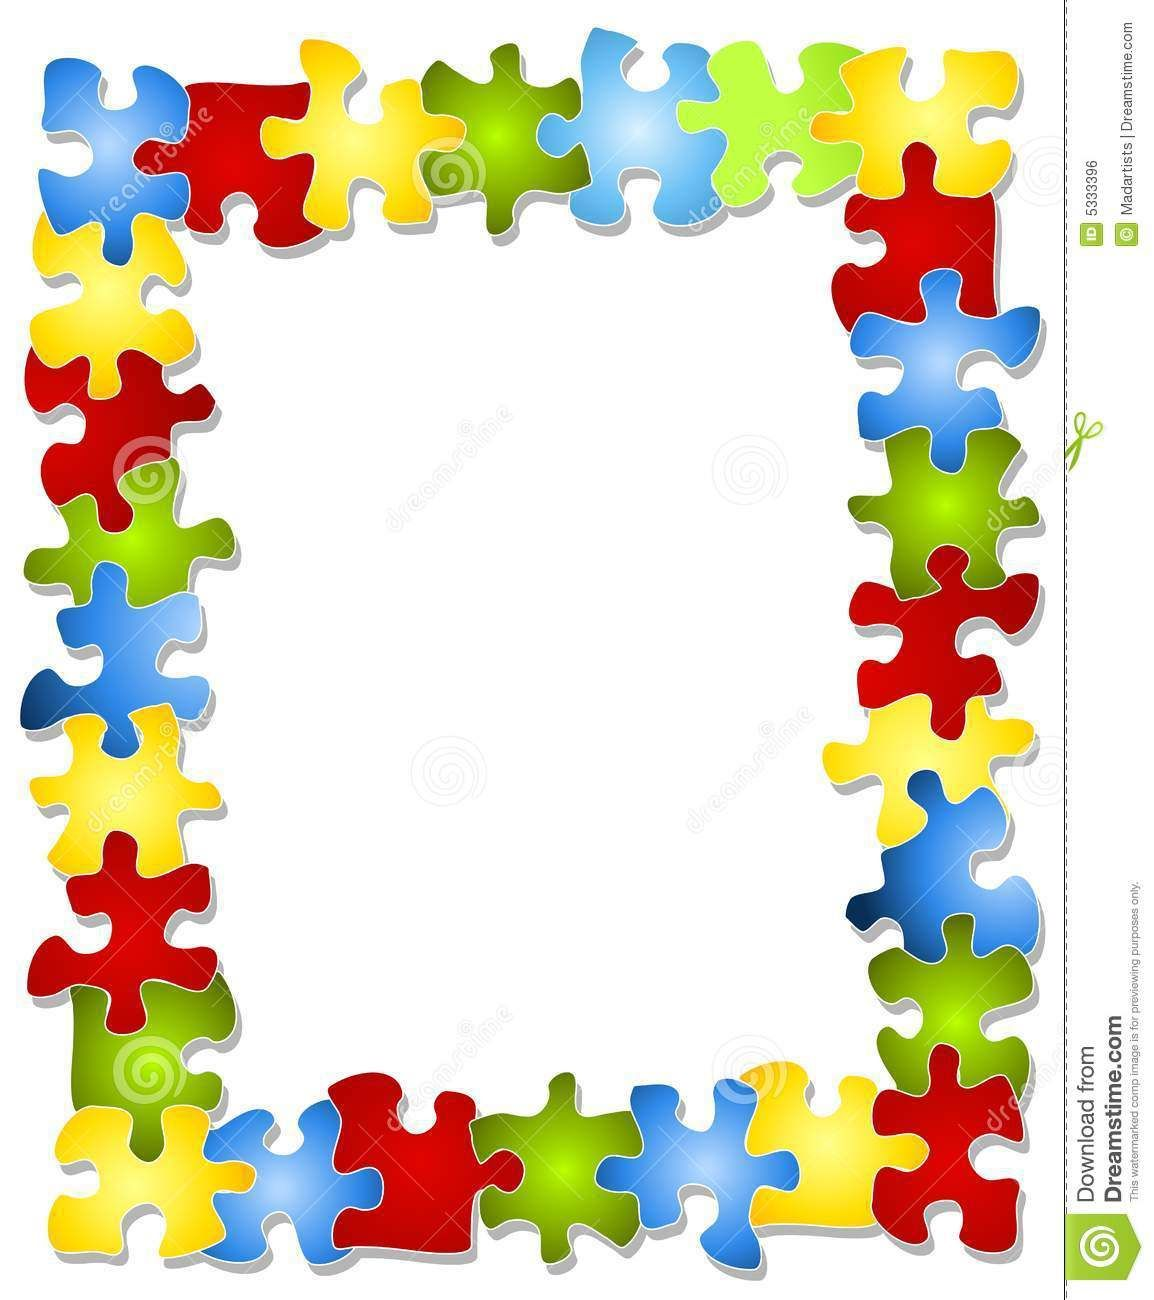 Imgs For > Puzzle Piece Border For Microsoft Word.